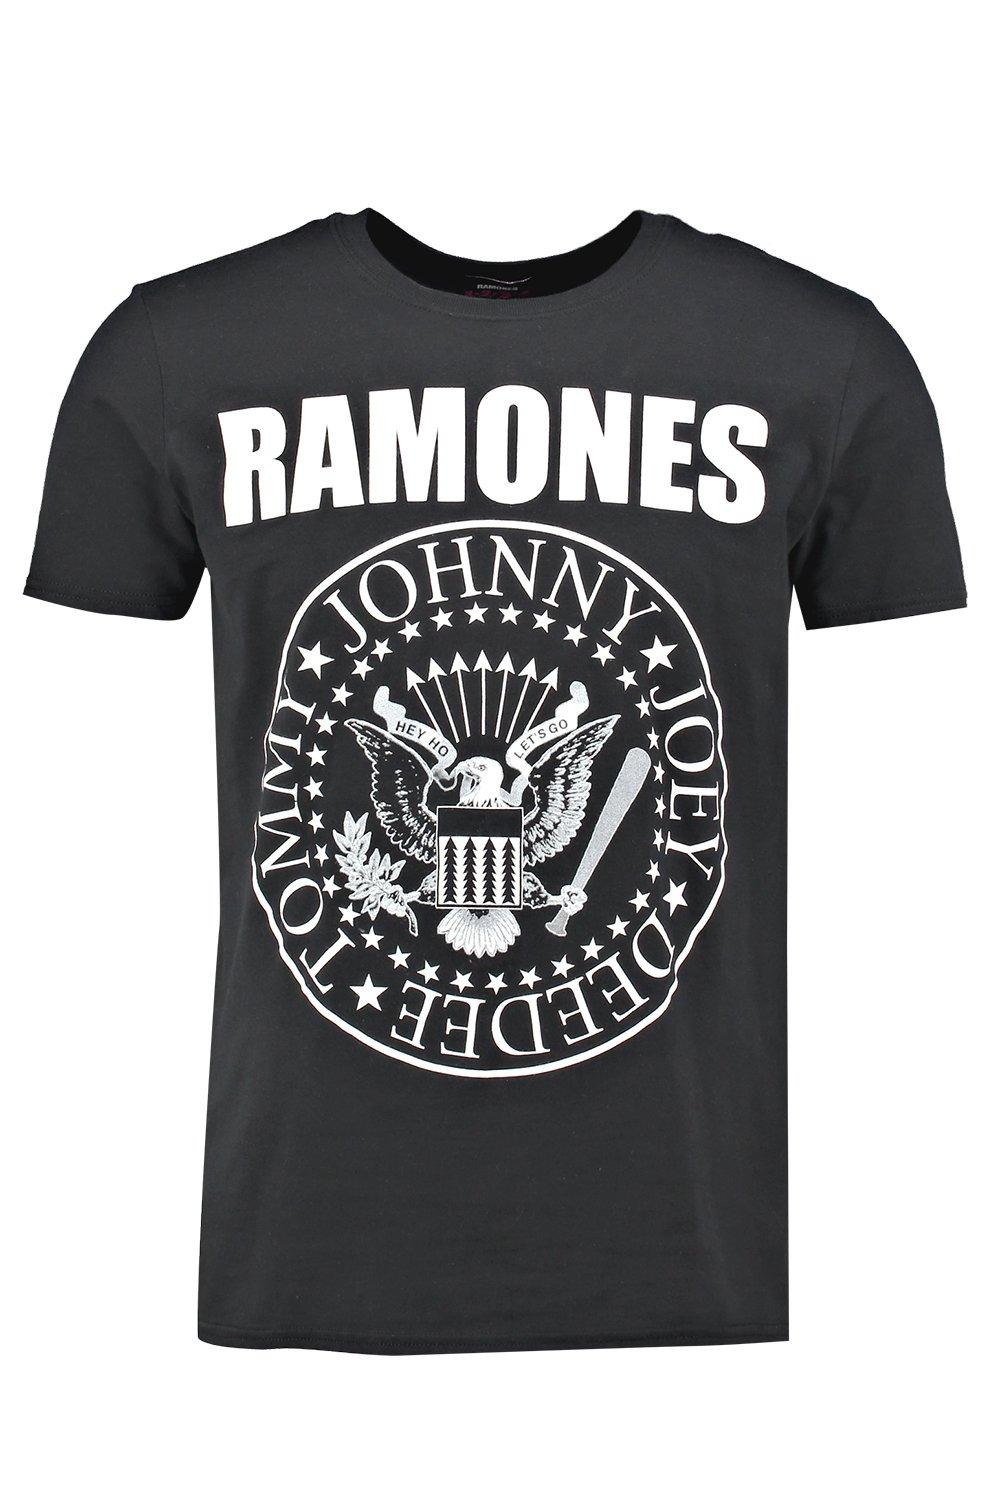 The Ramones official store on Merchbar has a great selection of Ramones merchandise for every Ramones fan. Whether you're looking for Ramones T Shirts or Ramones vinyl we've got what you need.